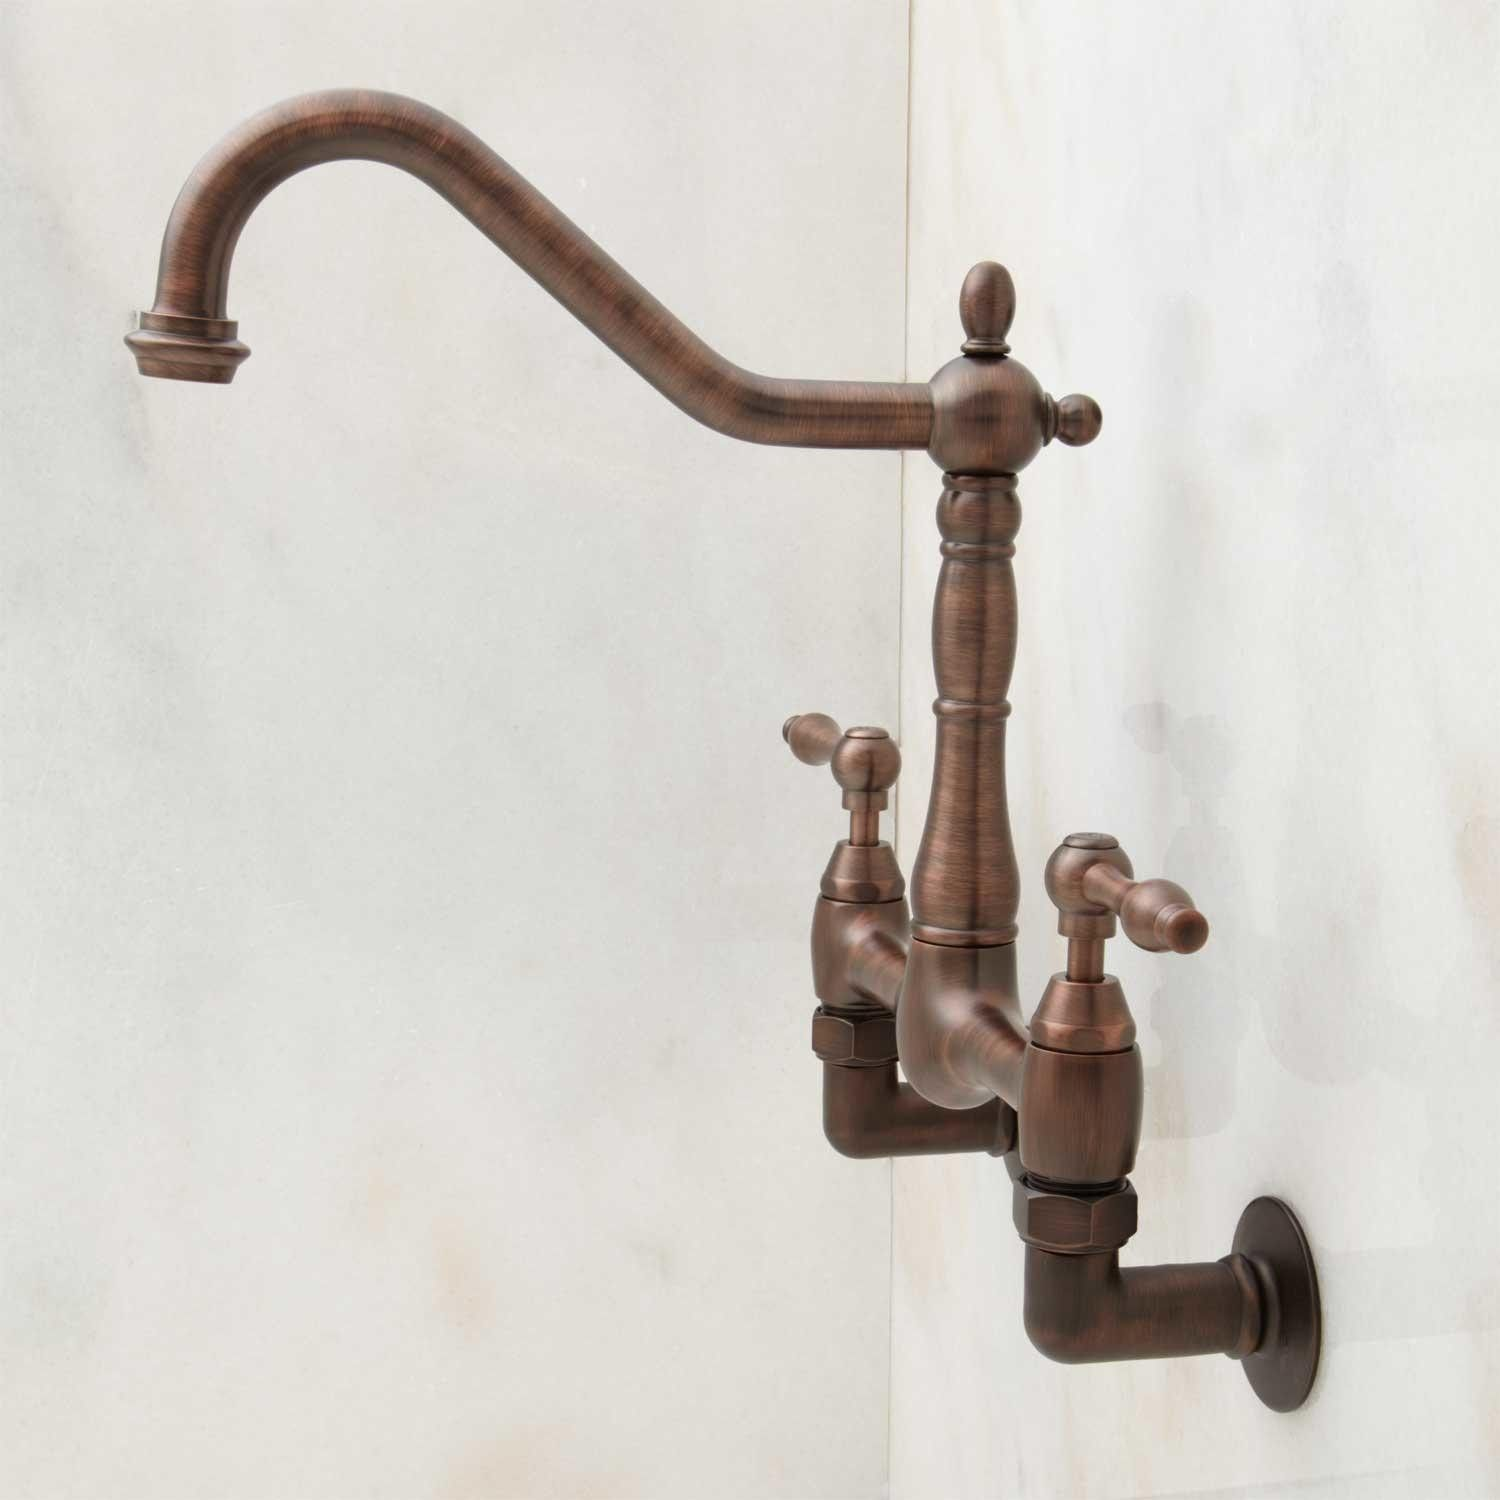 Felicity Wall-Mount Kitchen Faucet | Wall mount kitchen faucet, Wall ...